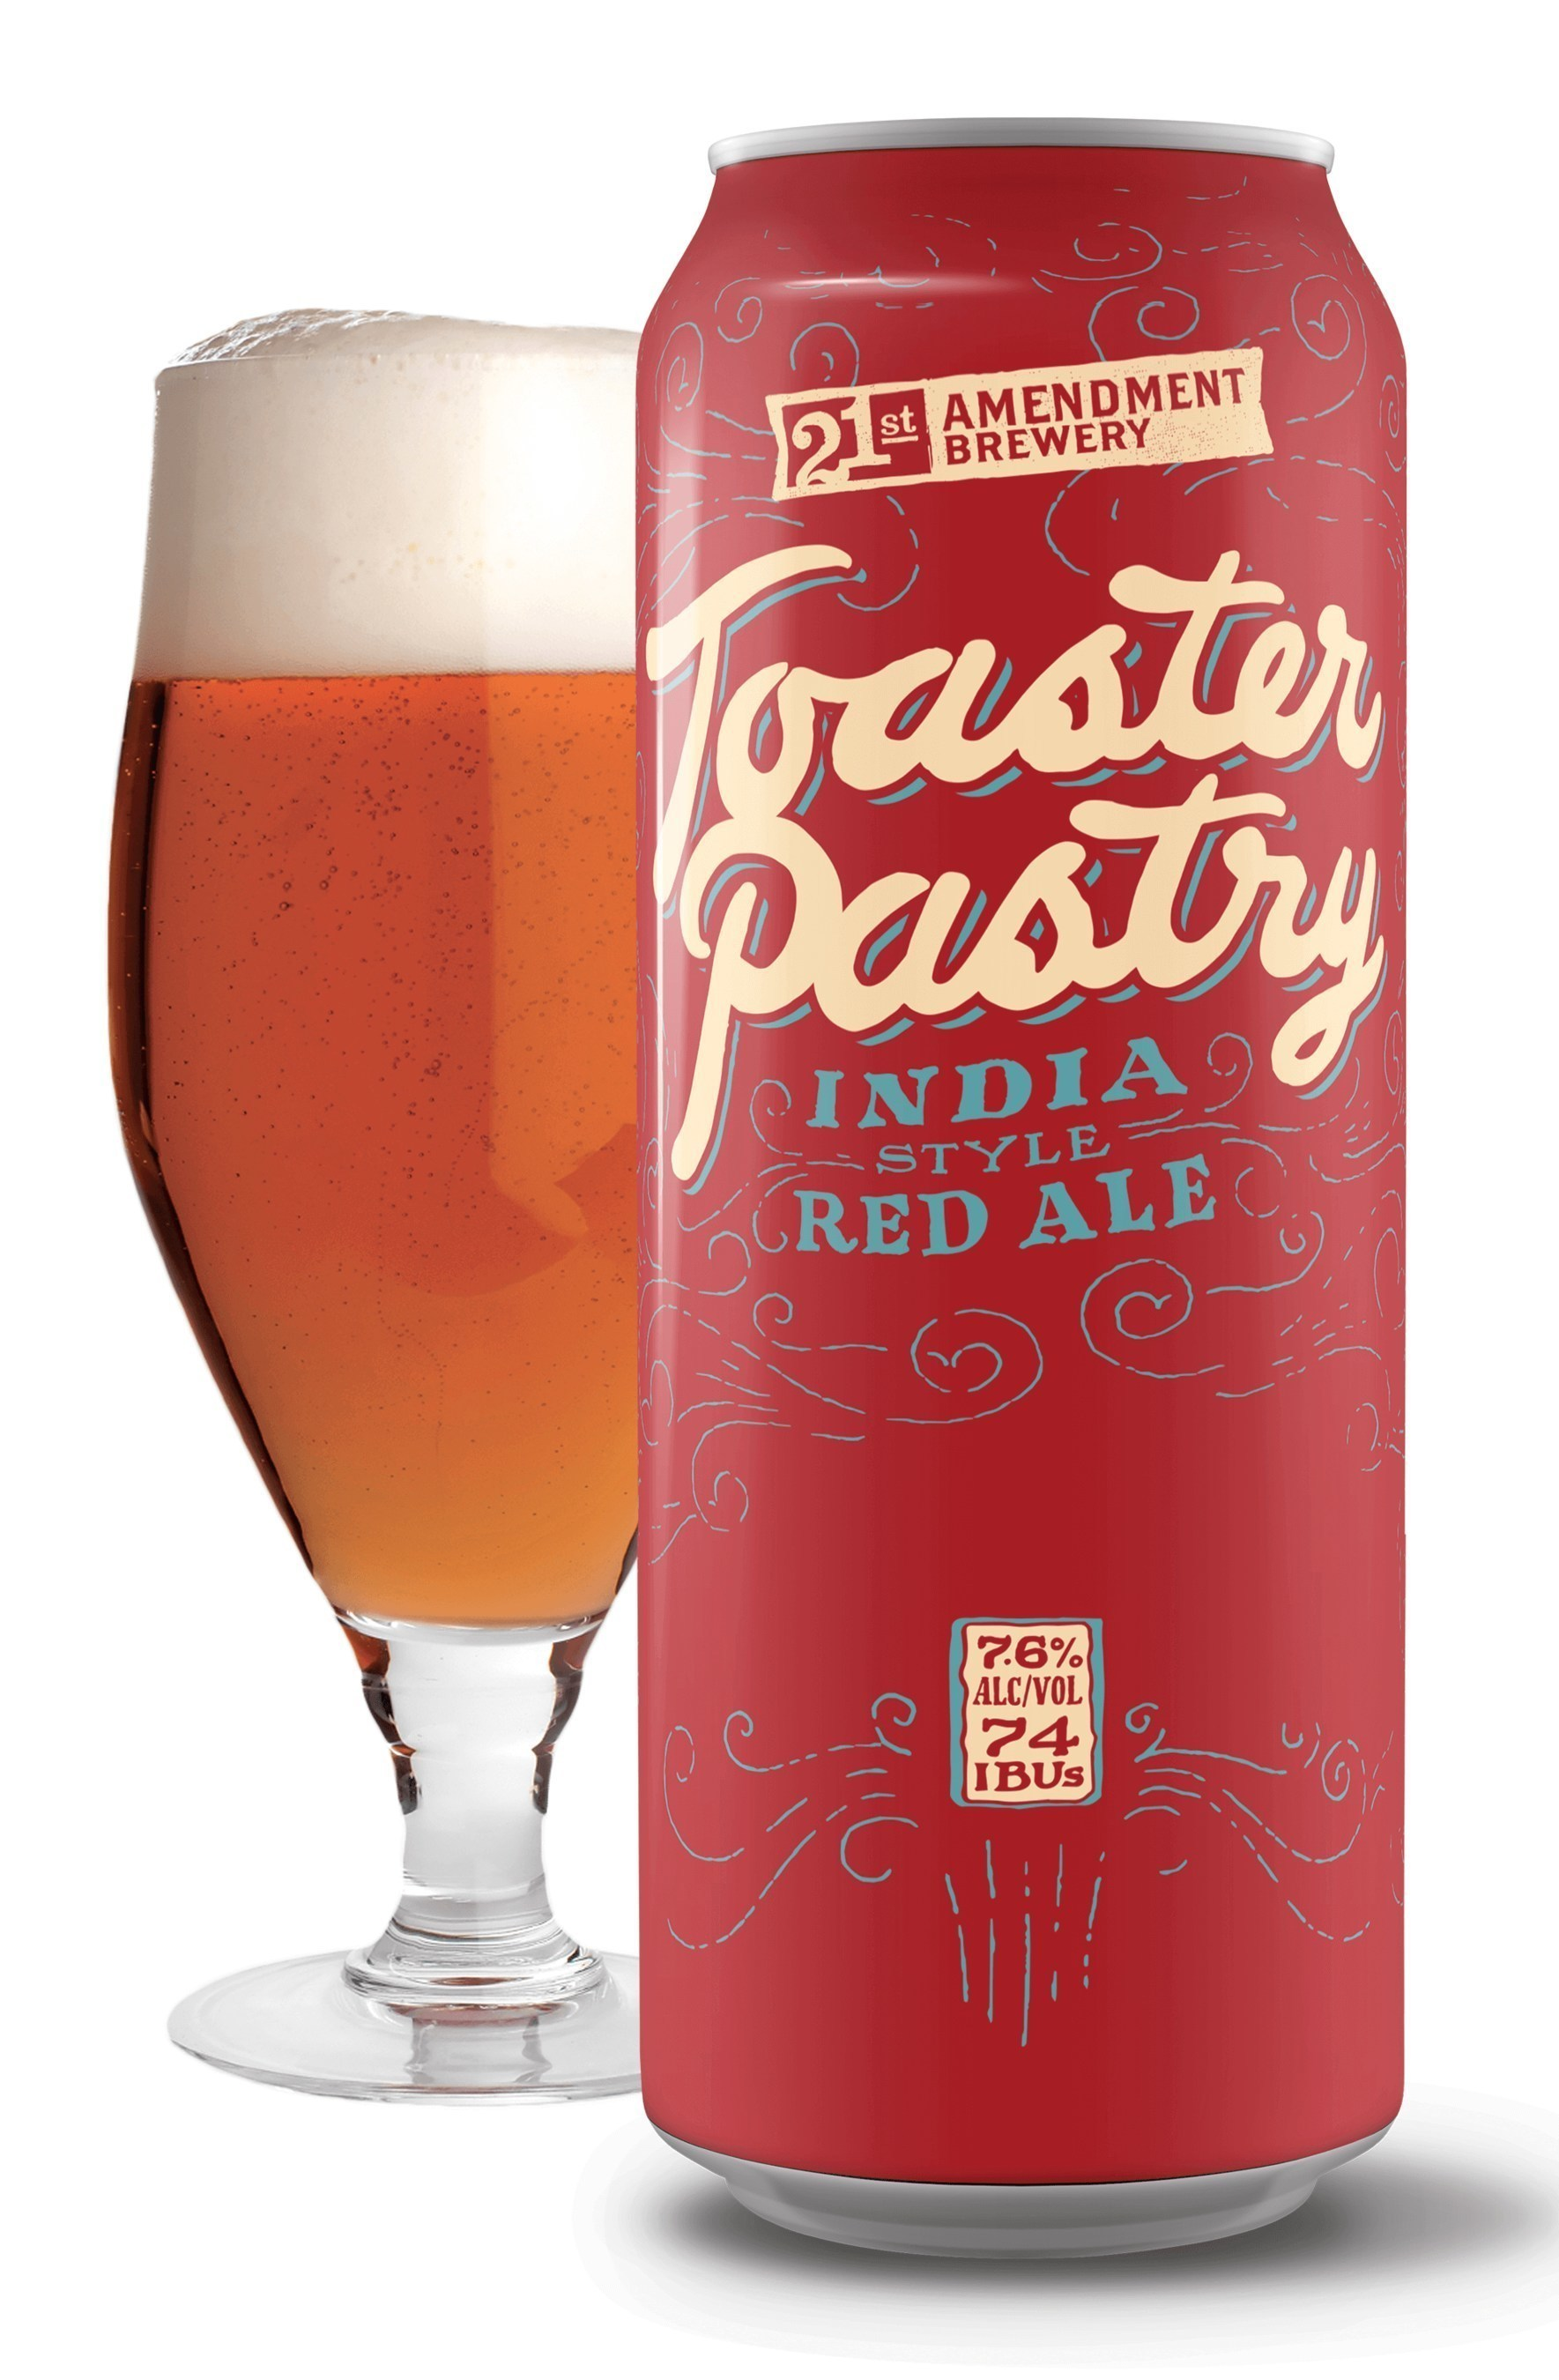 21st Amendment Brewery debuts new Toaster Pastry craft beer in Ball's 19.2-ounce cans; First new beer from new brewery in San Leandro, California, features unique, appealing can size